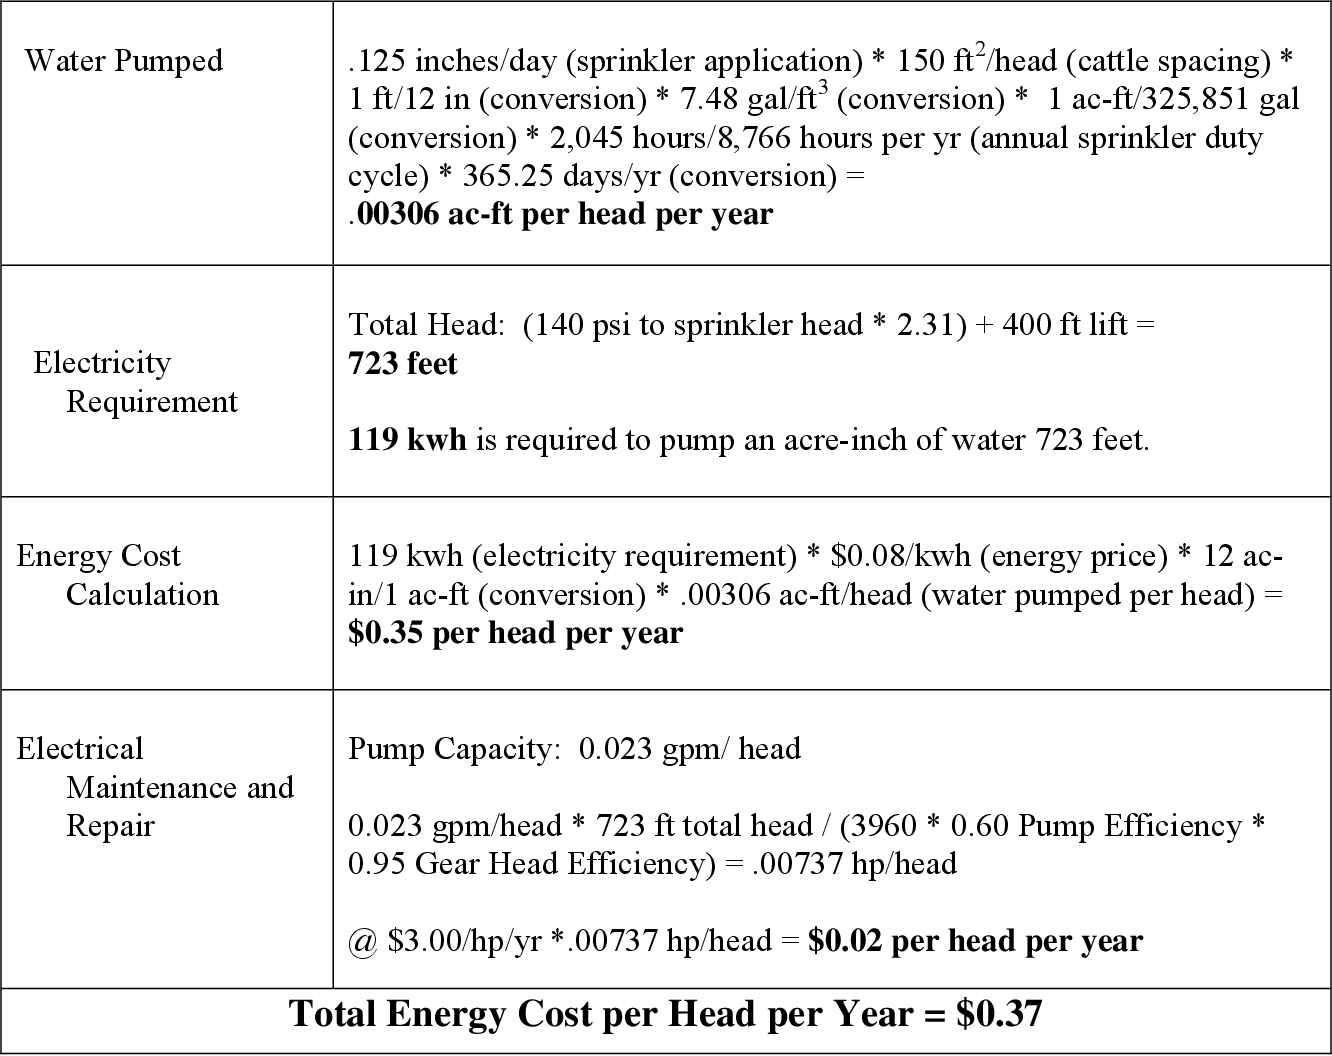 Economic Analysis of Solid-Set Sprinklers to Control Dust in